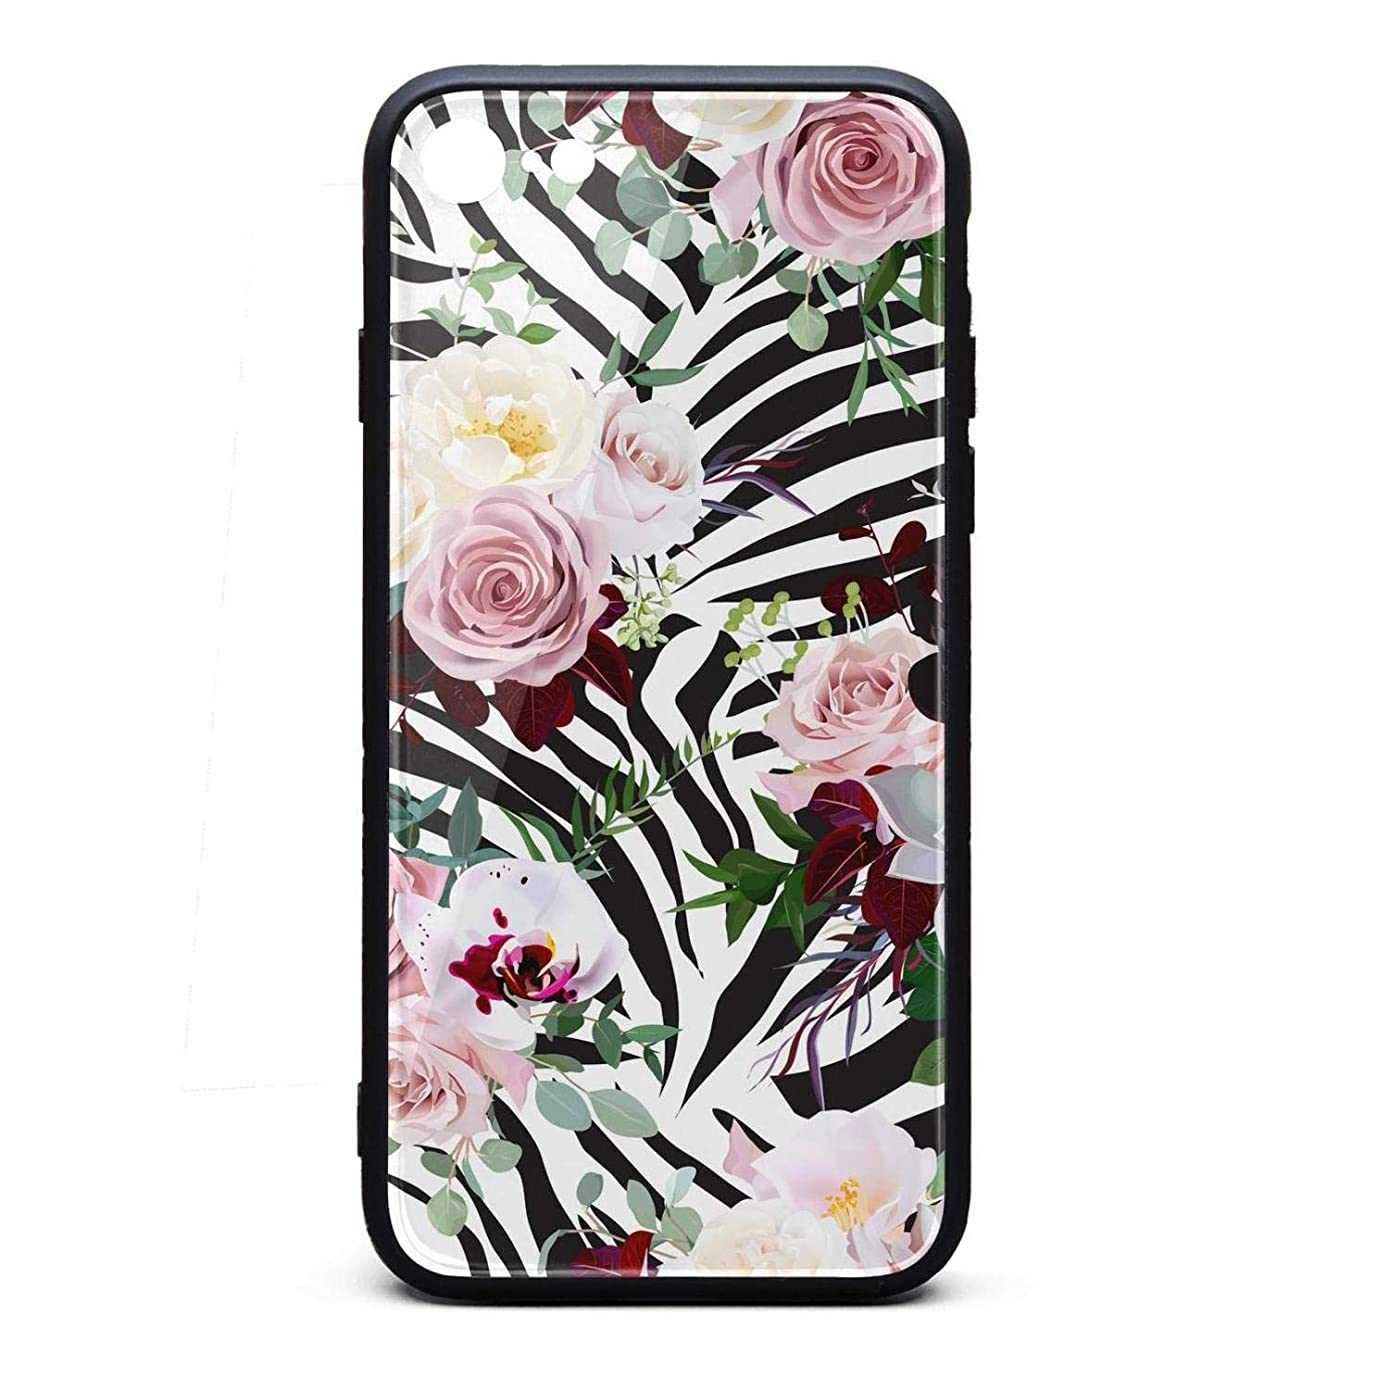 Phone Case for iPhone 6Plus/iPhone 6sPlus Hippie Boho Zebra Striped Animal and Floral Tempered Glass Black Anti-Scratch TPU Rubber Bumper Shock Cover for Womens Back Cover